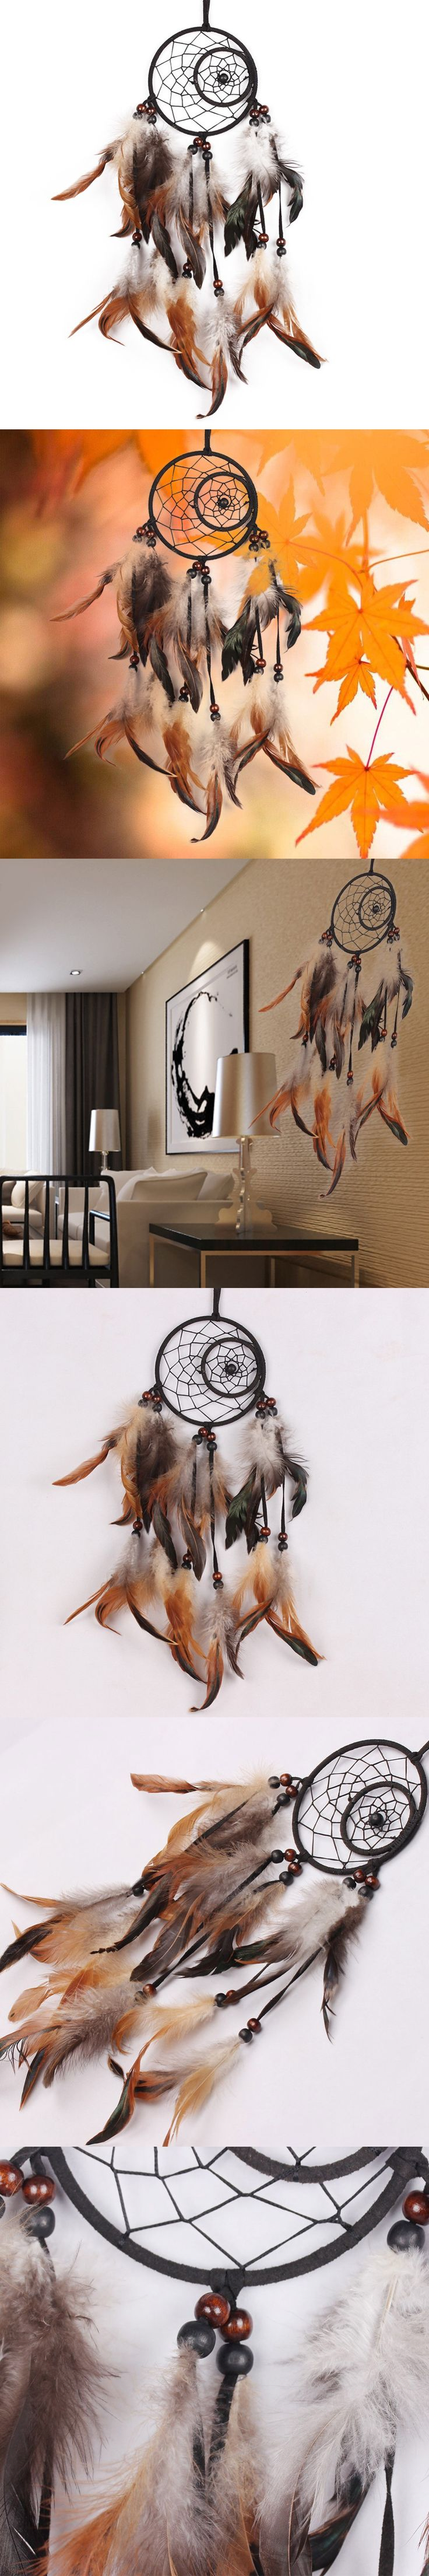 Black Handmade Indian Dream Catcher with Feathers Car Wall Hanging Decoration Dream Catchers For Sale Ornament Gift $5.84